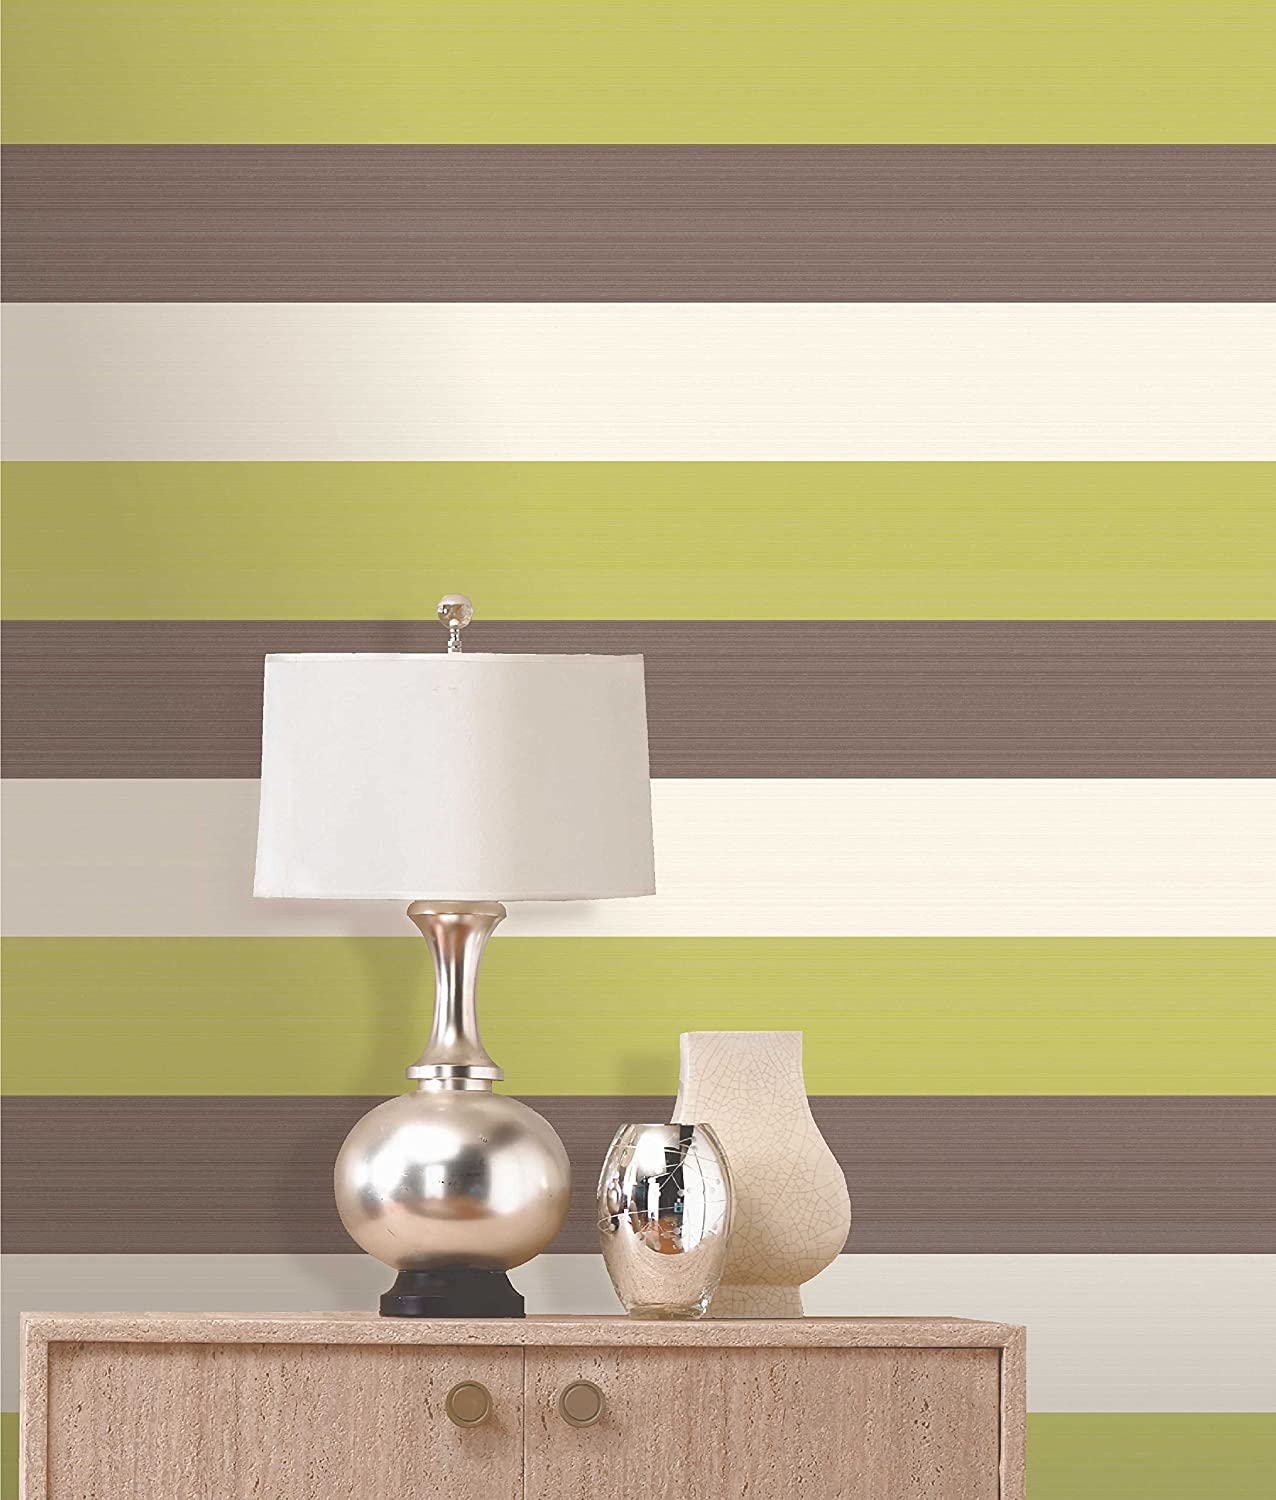 Olivia II Chocolate Cream and Green Striped Wallpaper 6156: Amazon ...